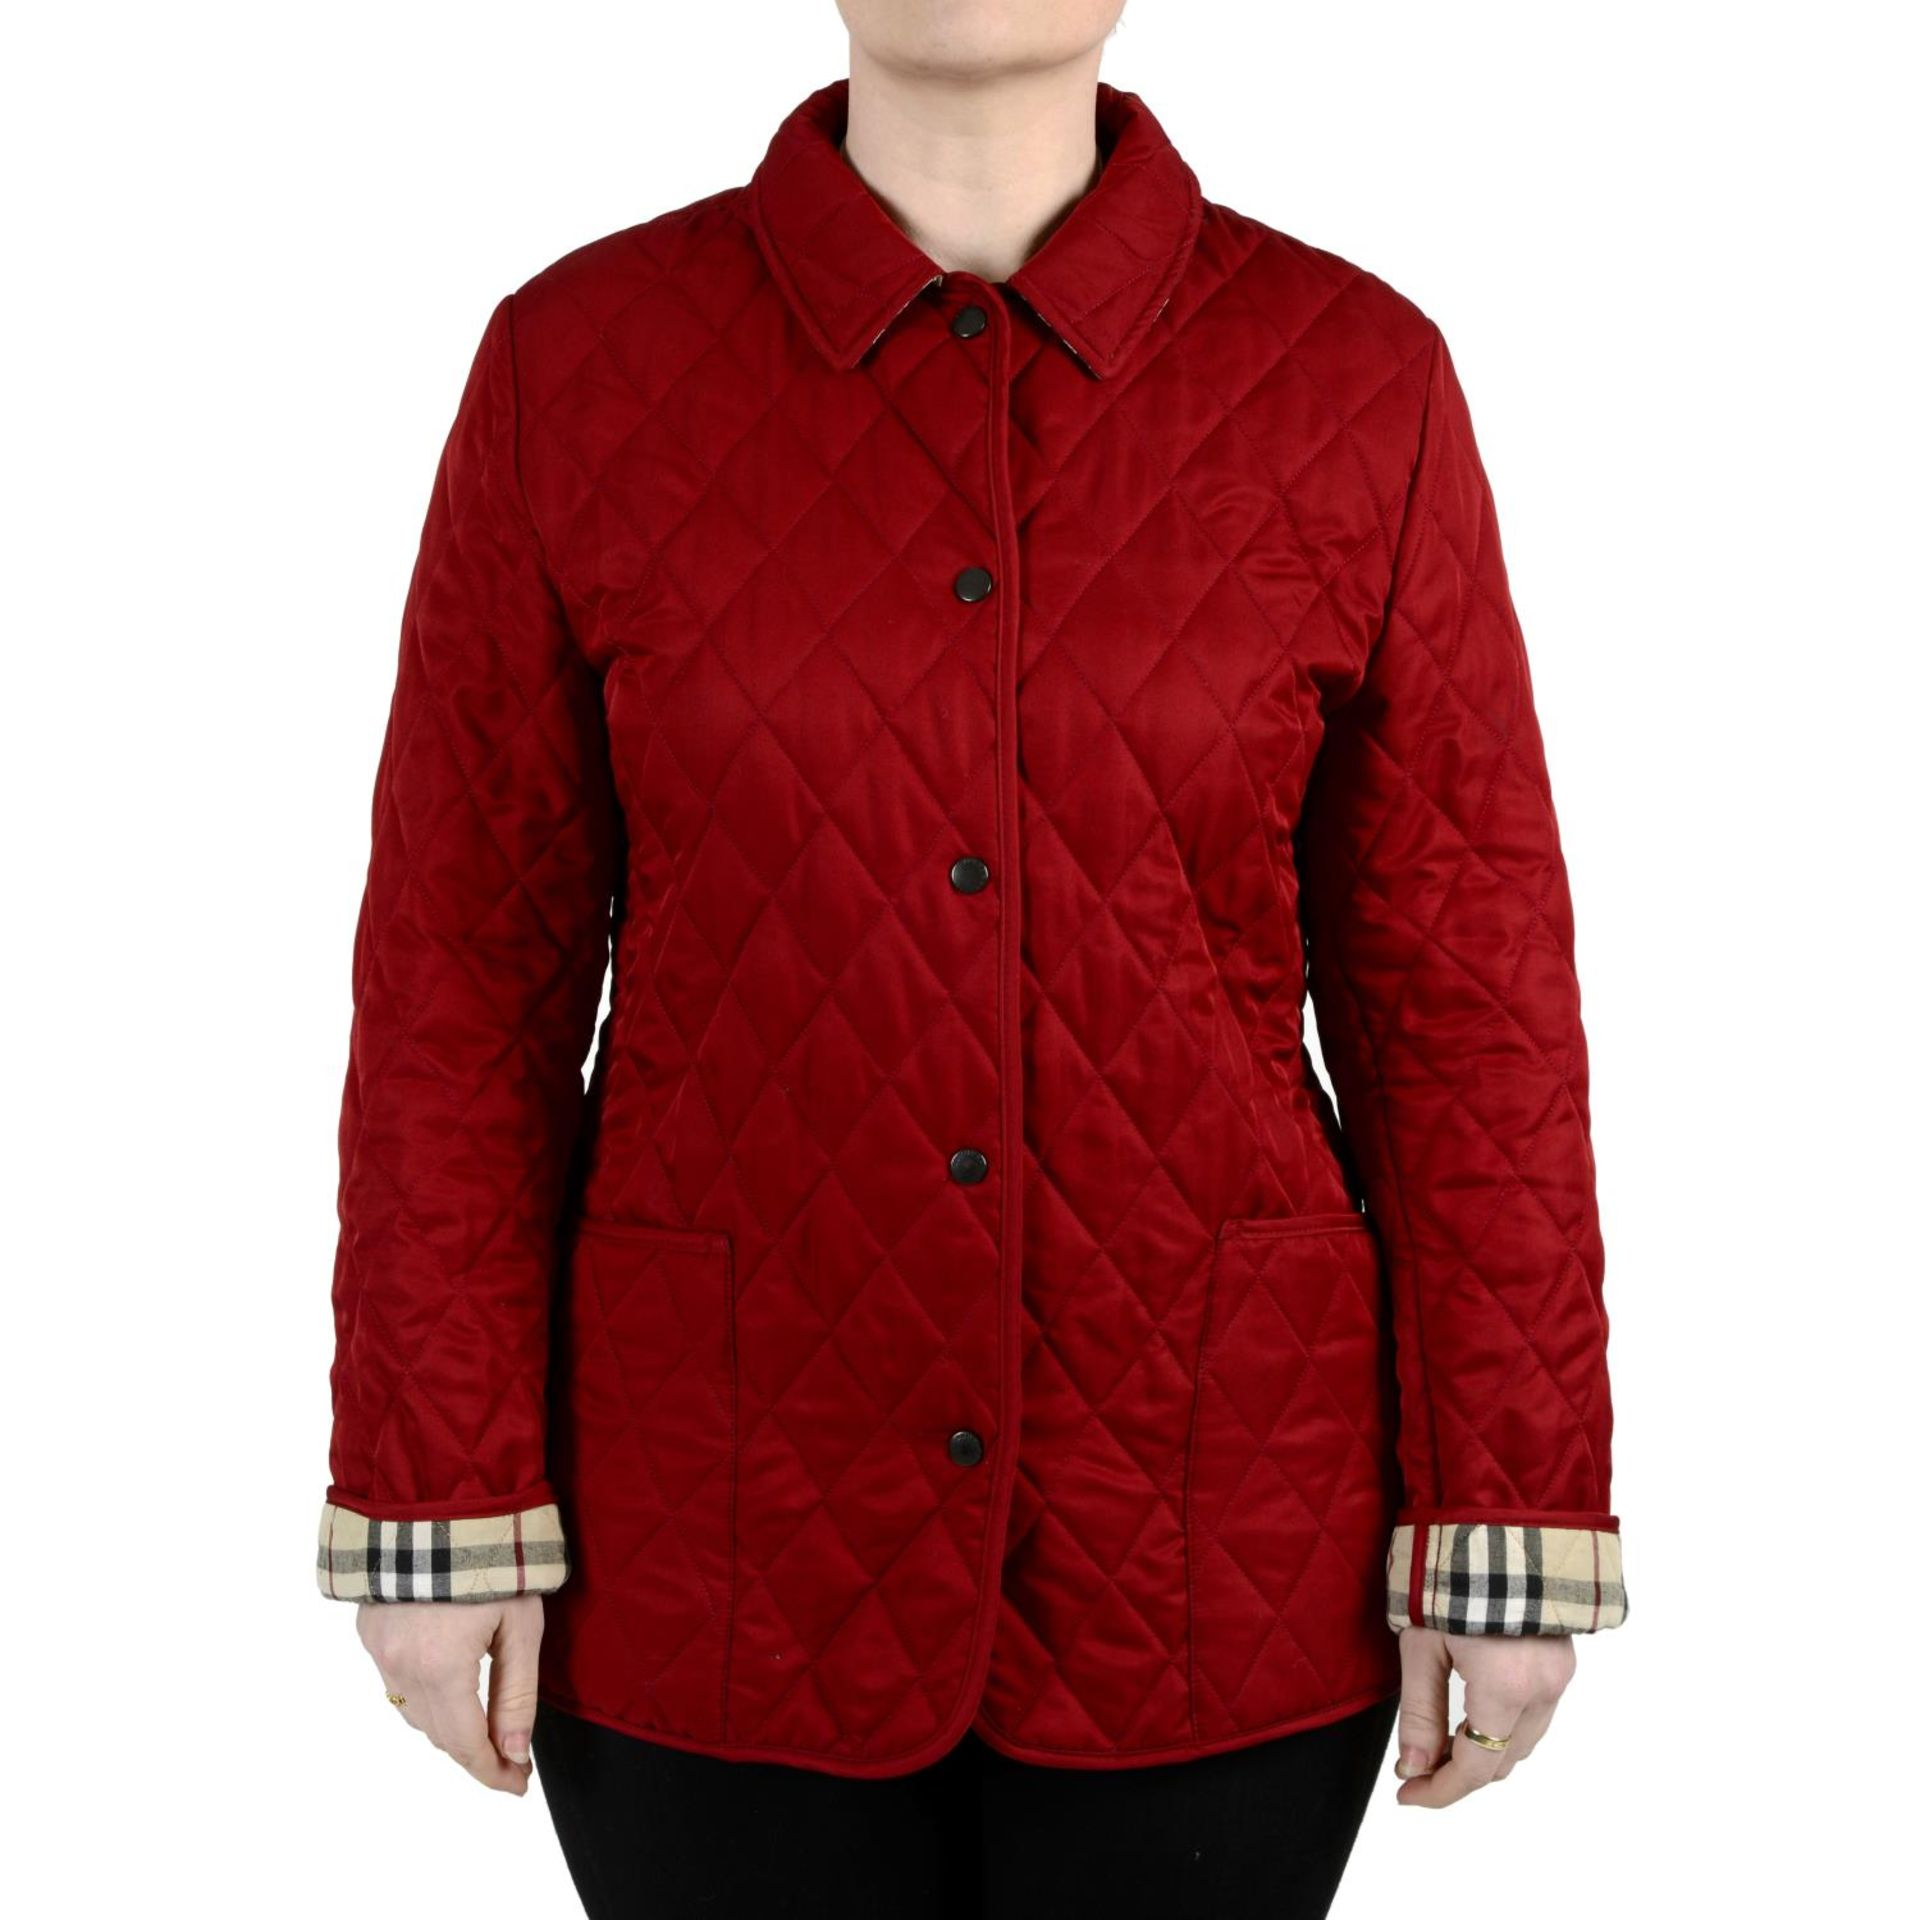 BURBERRY - a red quilted jacket.